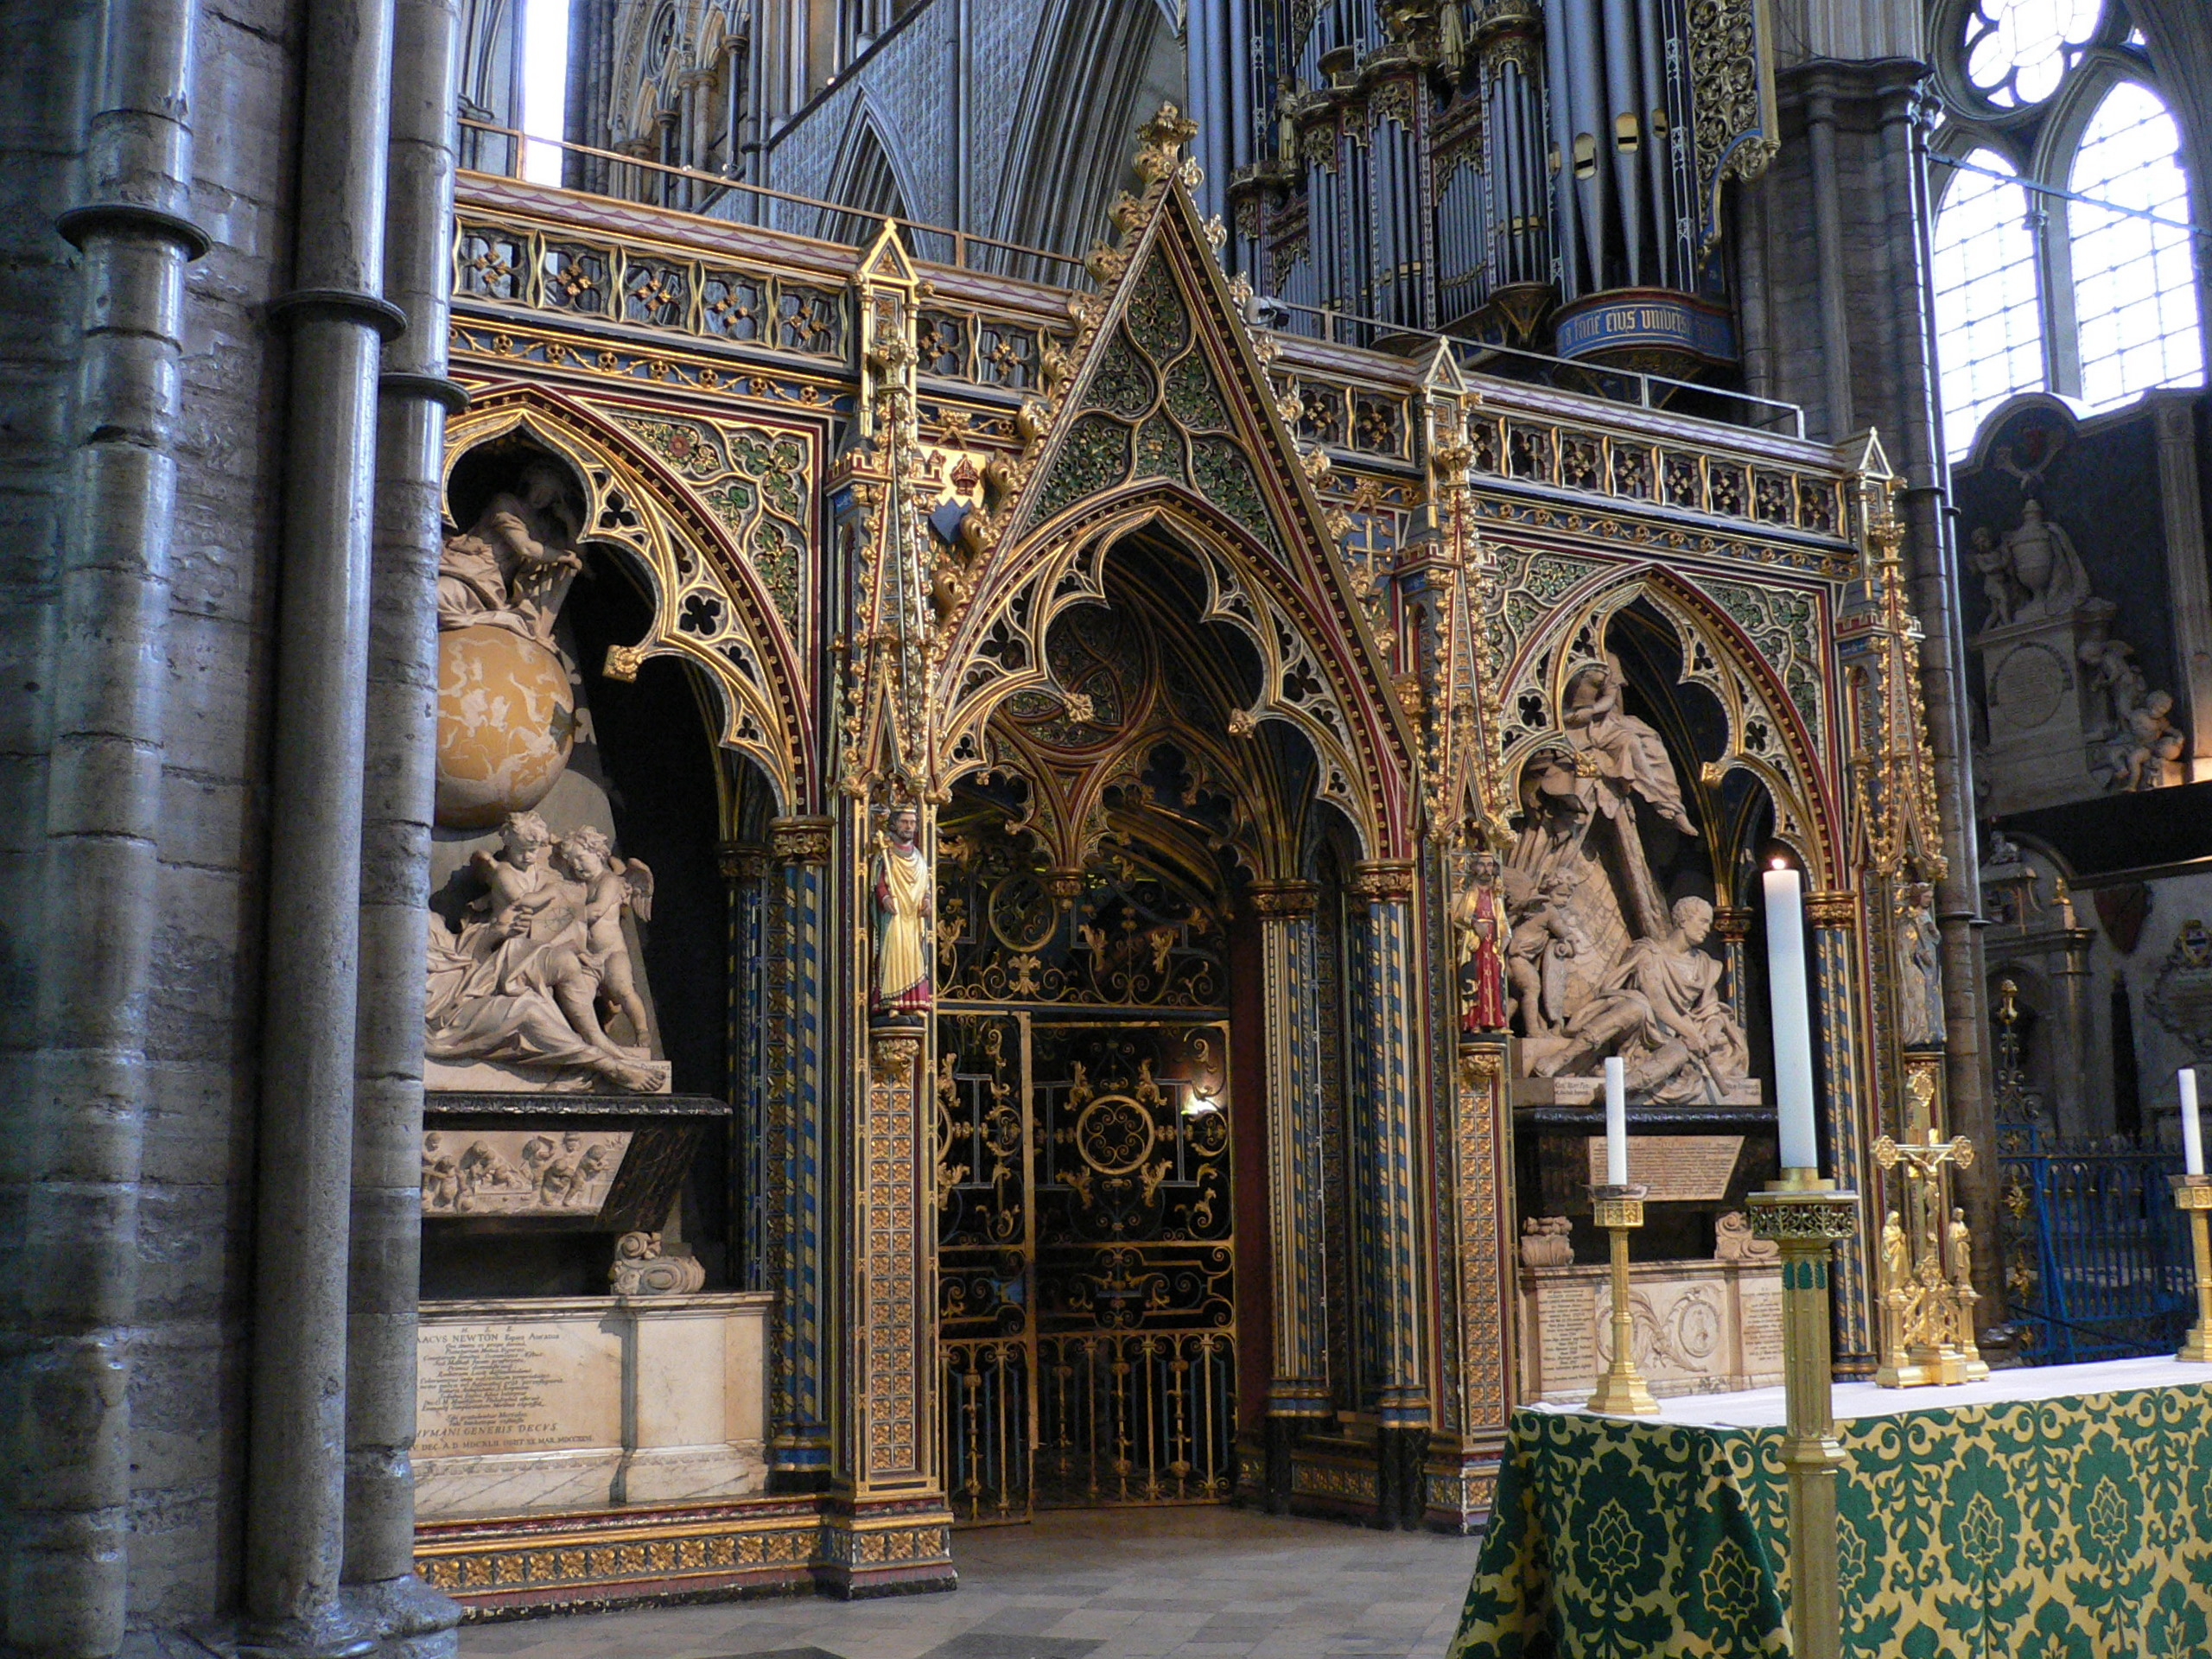 File:Westminster Abbey Interior 03.jpg - Wikimedia Commons